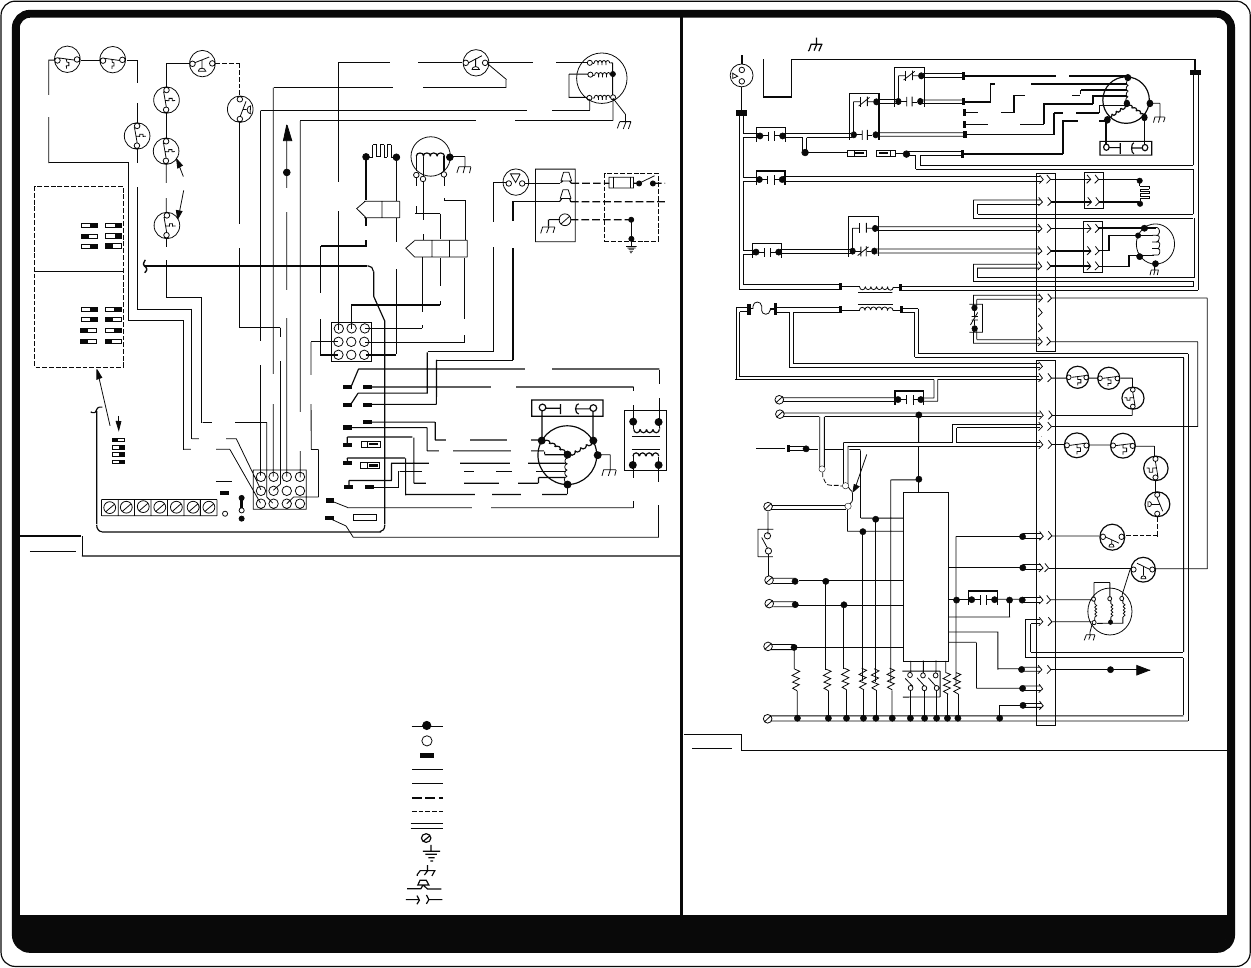 c2b73d22 c45f 43df a574 b6e707ea0cc7 bg8 bryant furnace diagram 100 images bryant gas heater wiring Coleman Tent Trailer Wiring Diagram at edmiracle.co